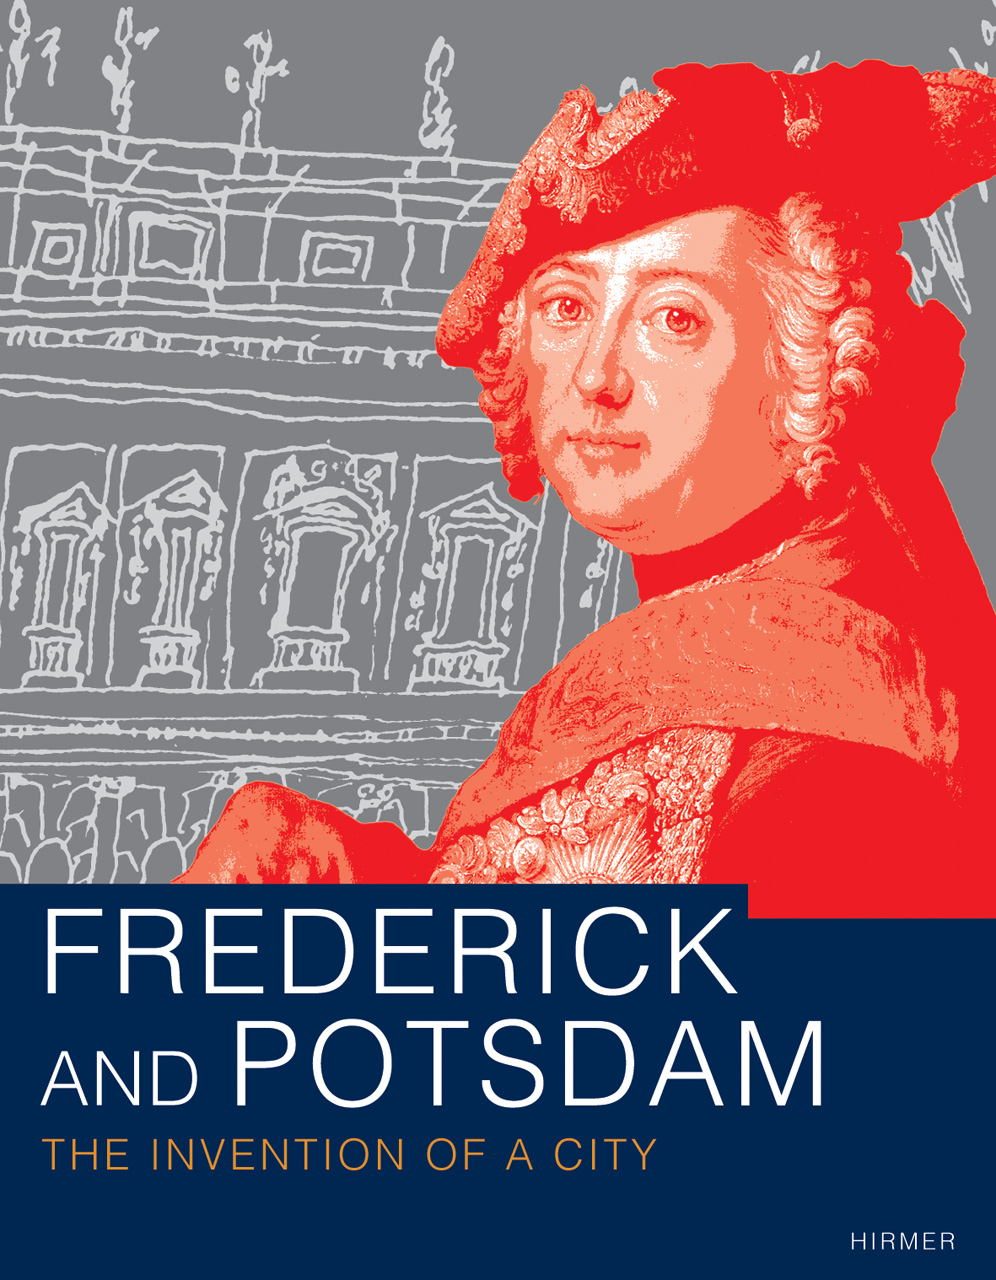 Frederick and Potsdam